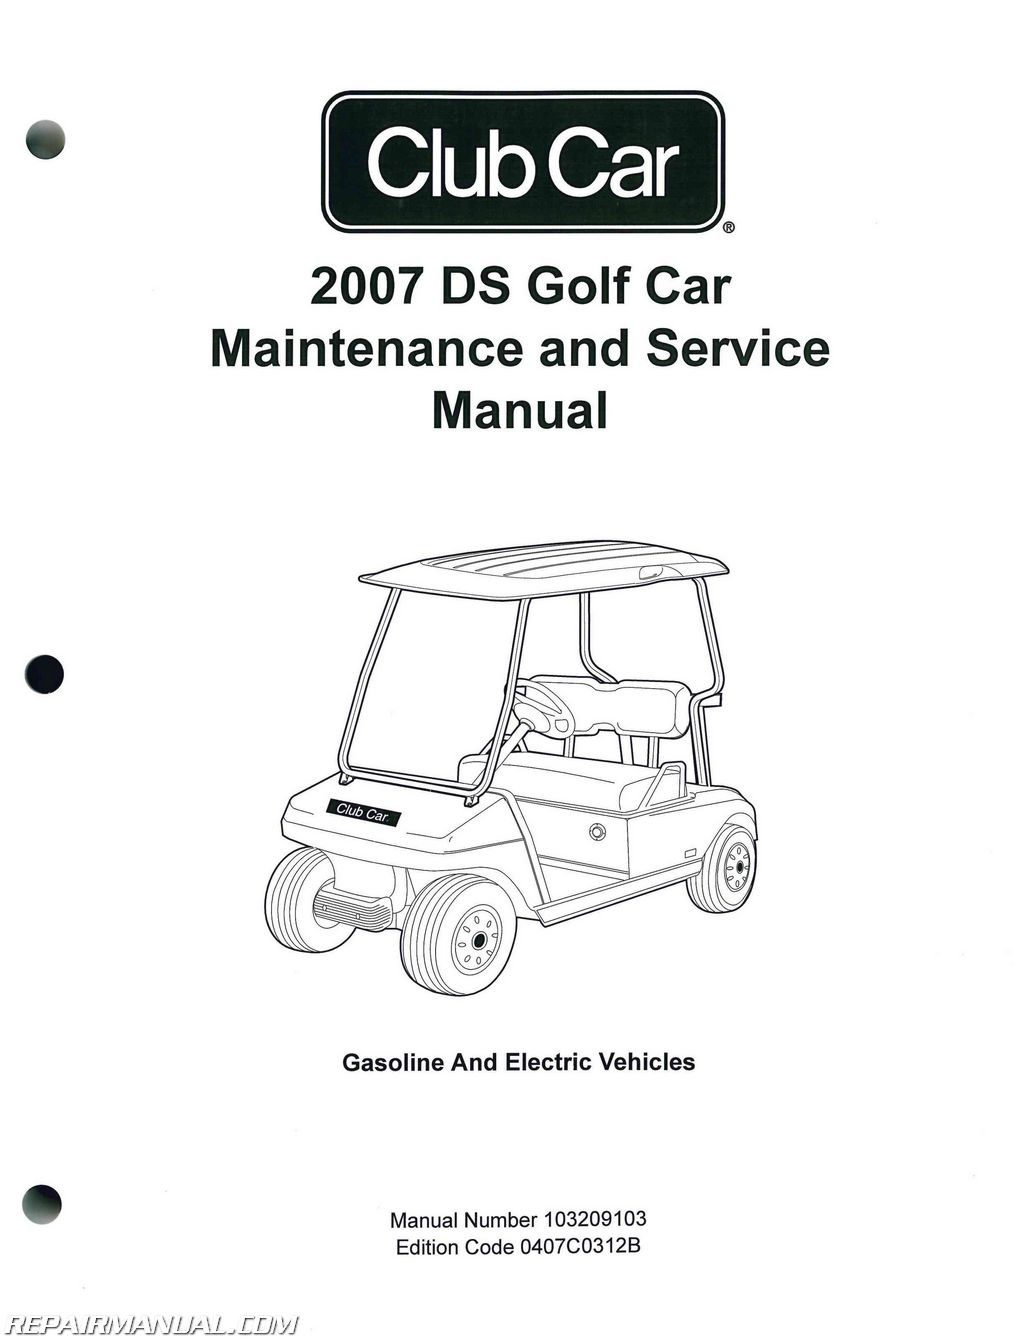 Club Car Fuel Diagram Books Of Wiring Gas Engine 2007 Ds Golf And Electric Cart Service Manual Rh Repairmanual Com Electrical Diagrams